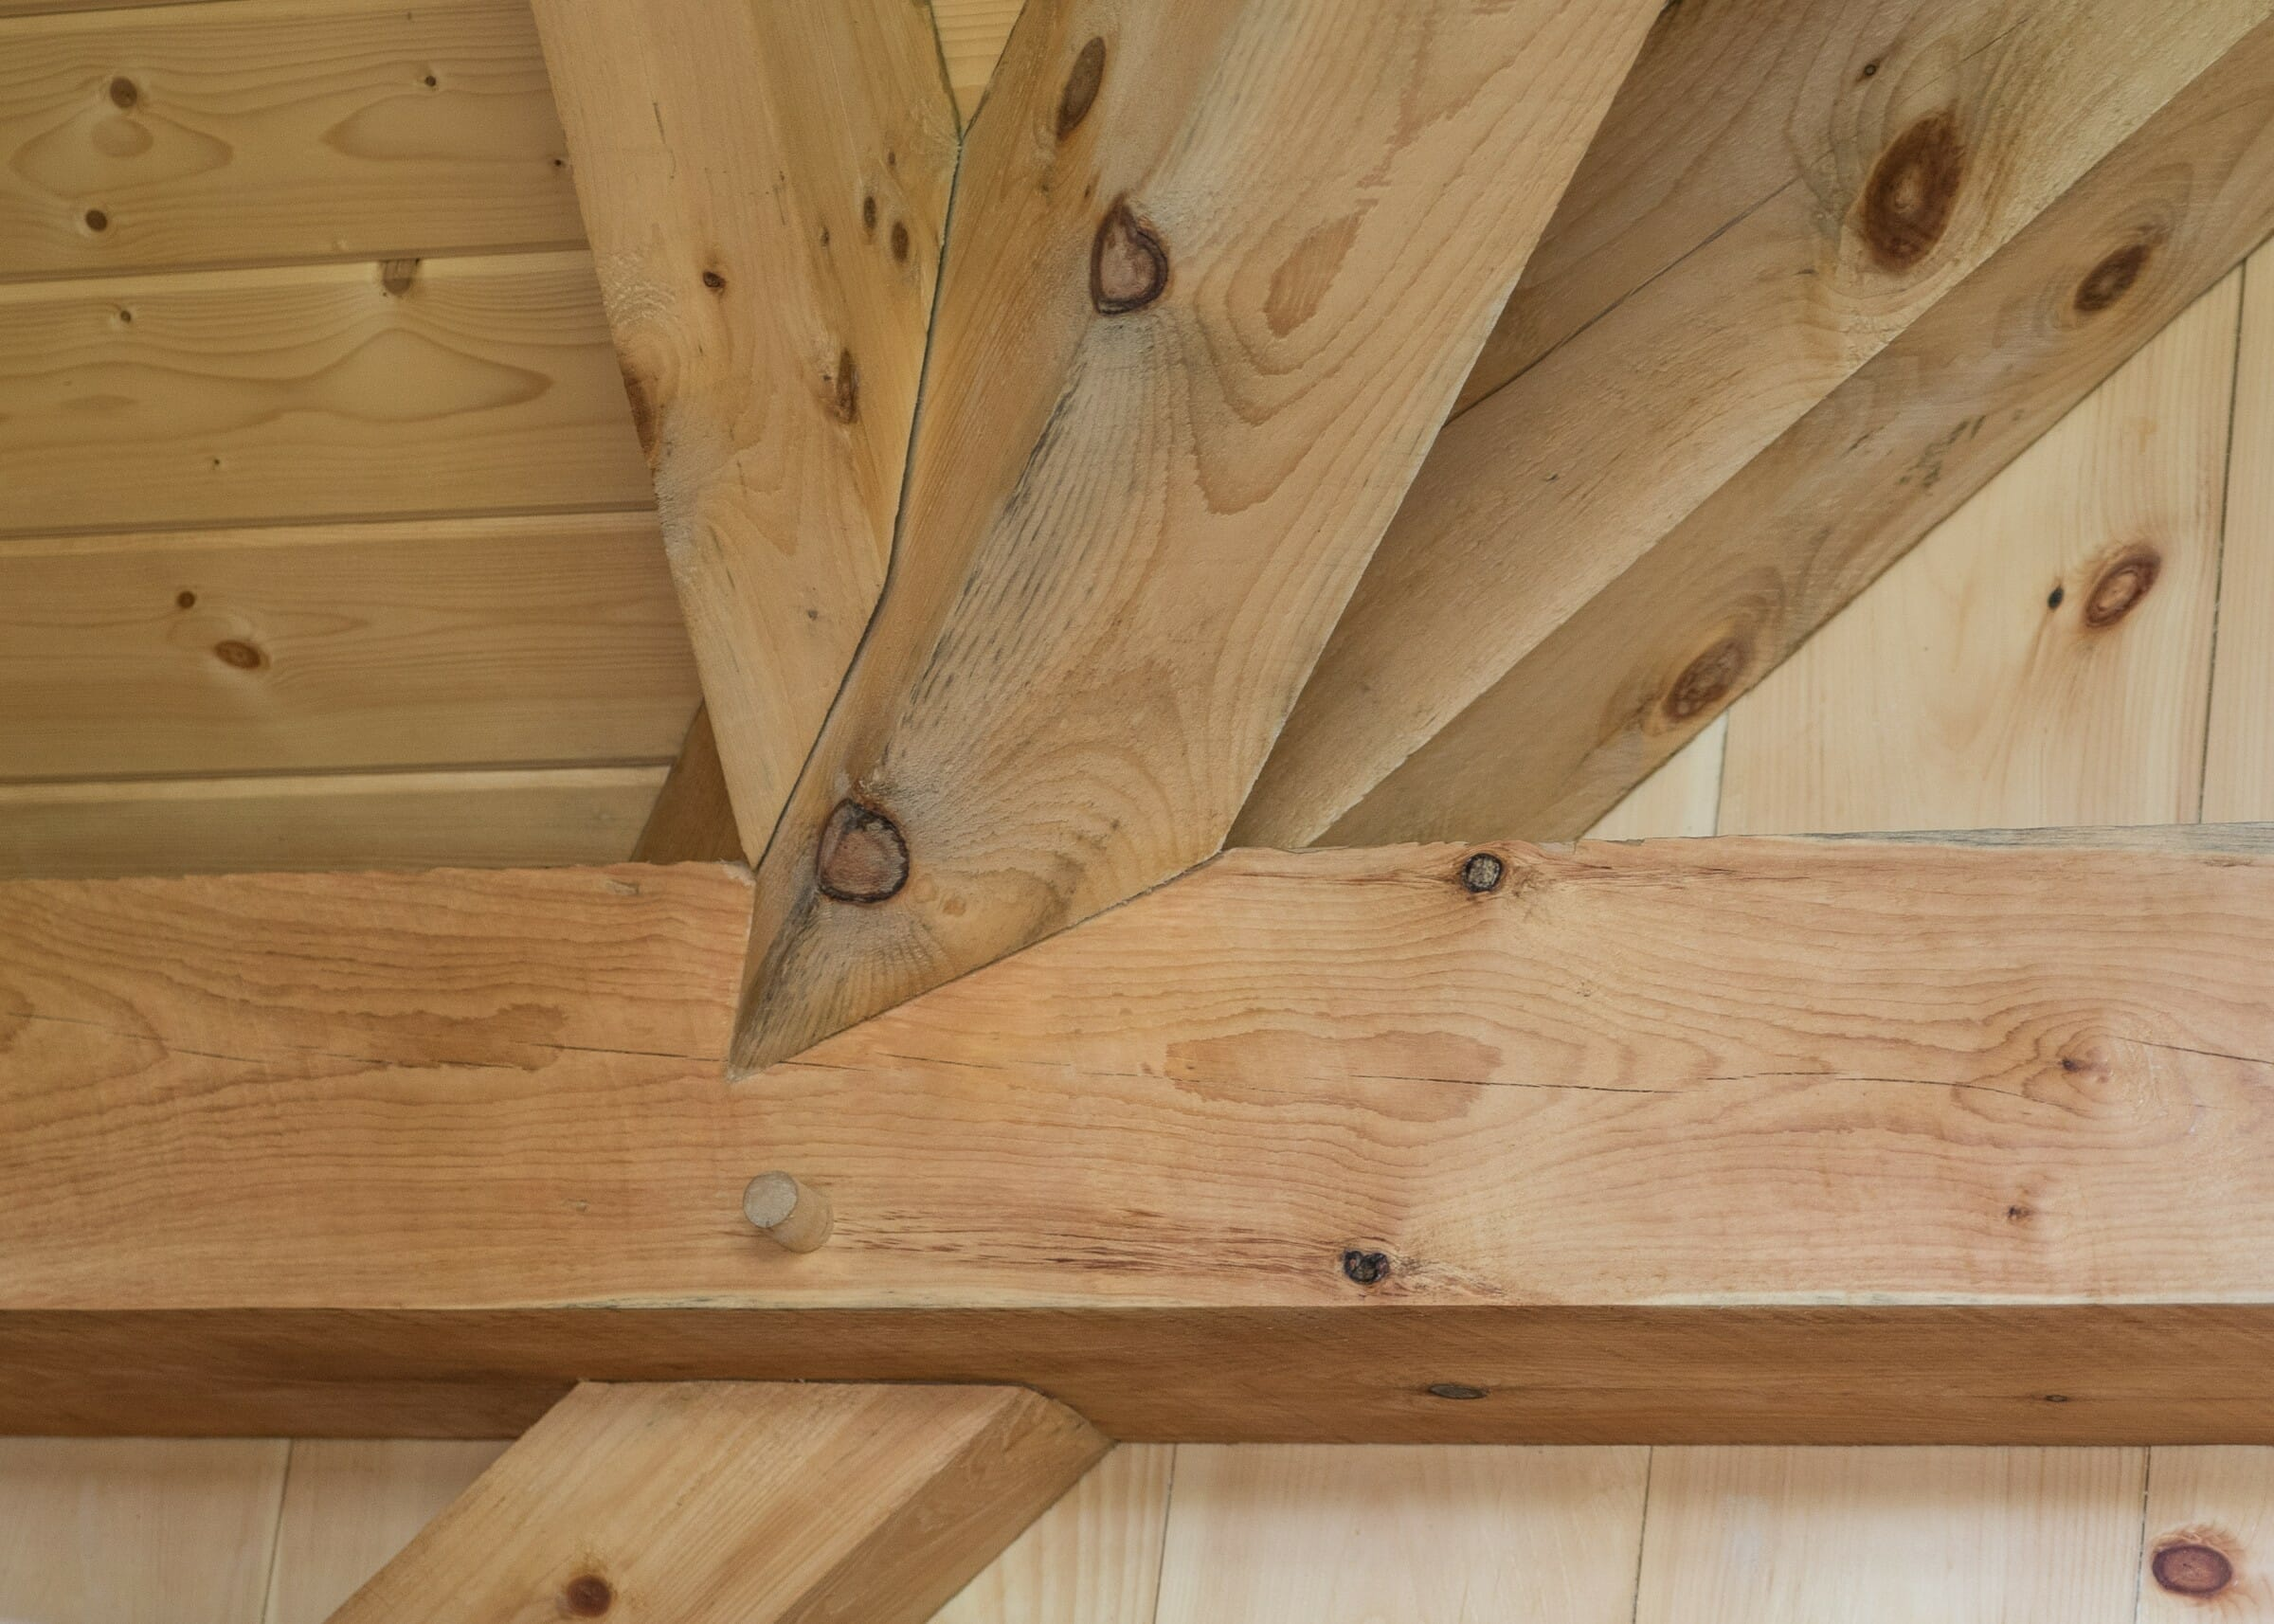 Complex joinery in a timber frame workout room made from rough sawn white pine